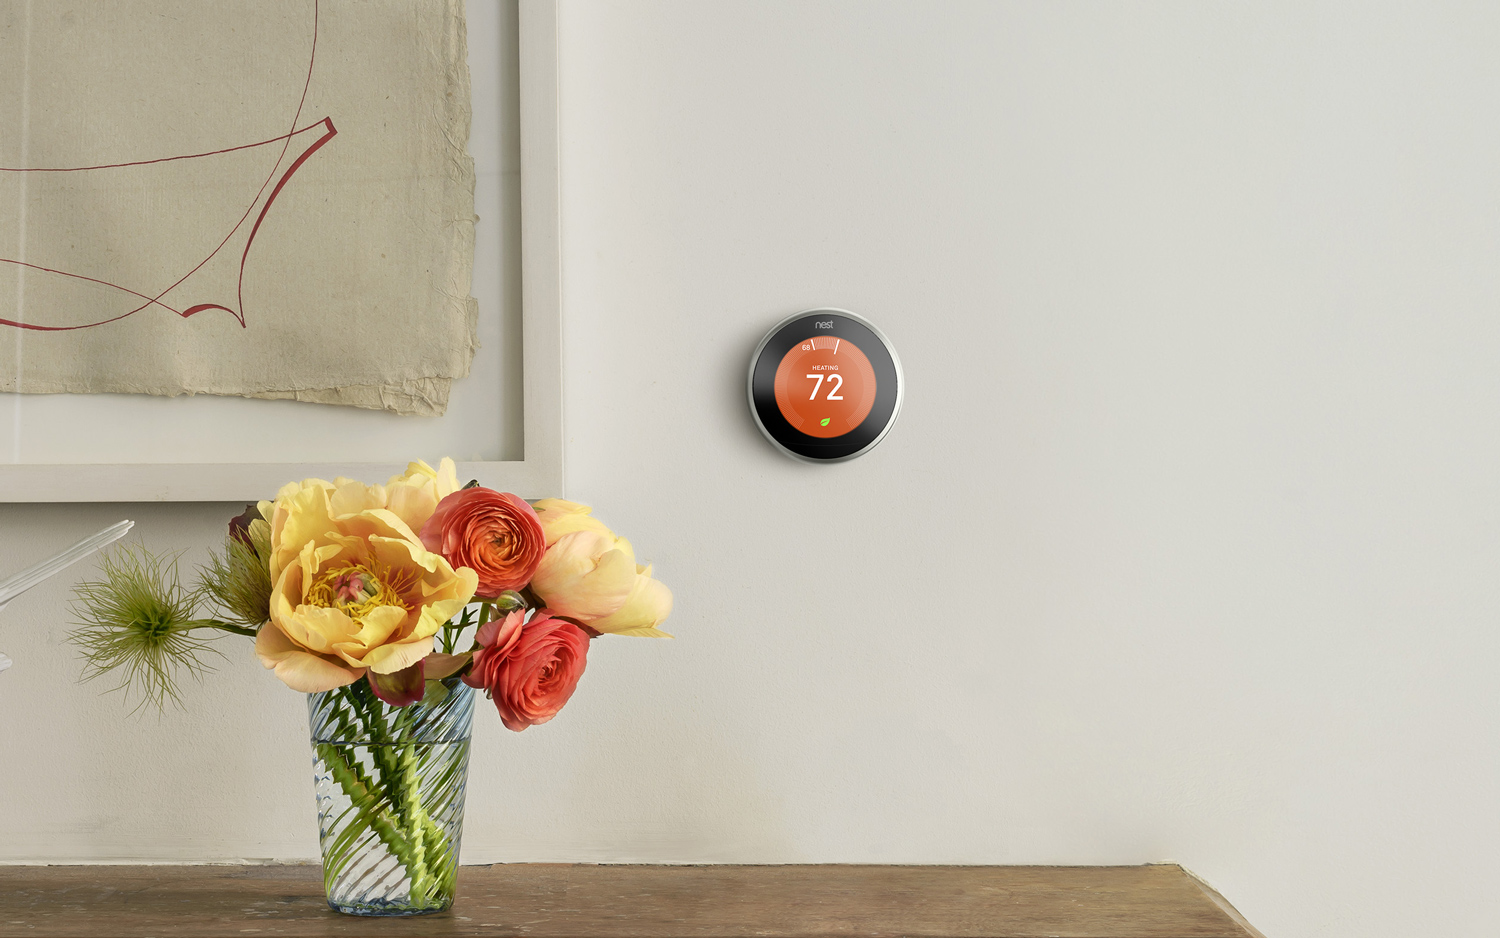 Best Thermostat 2019 - Smart, Programmable Thermostats, Reviewed